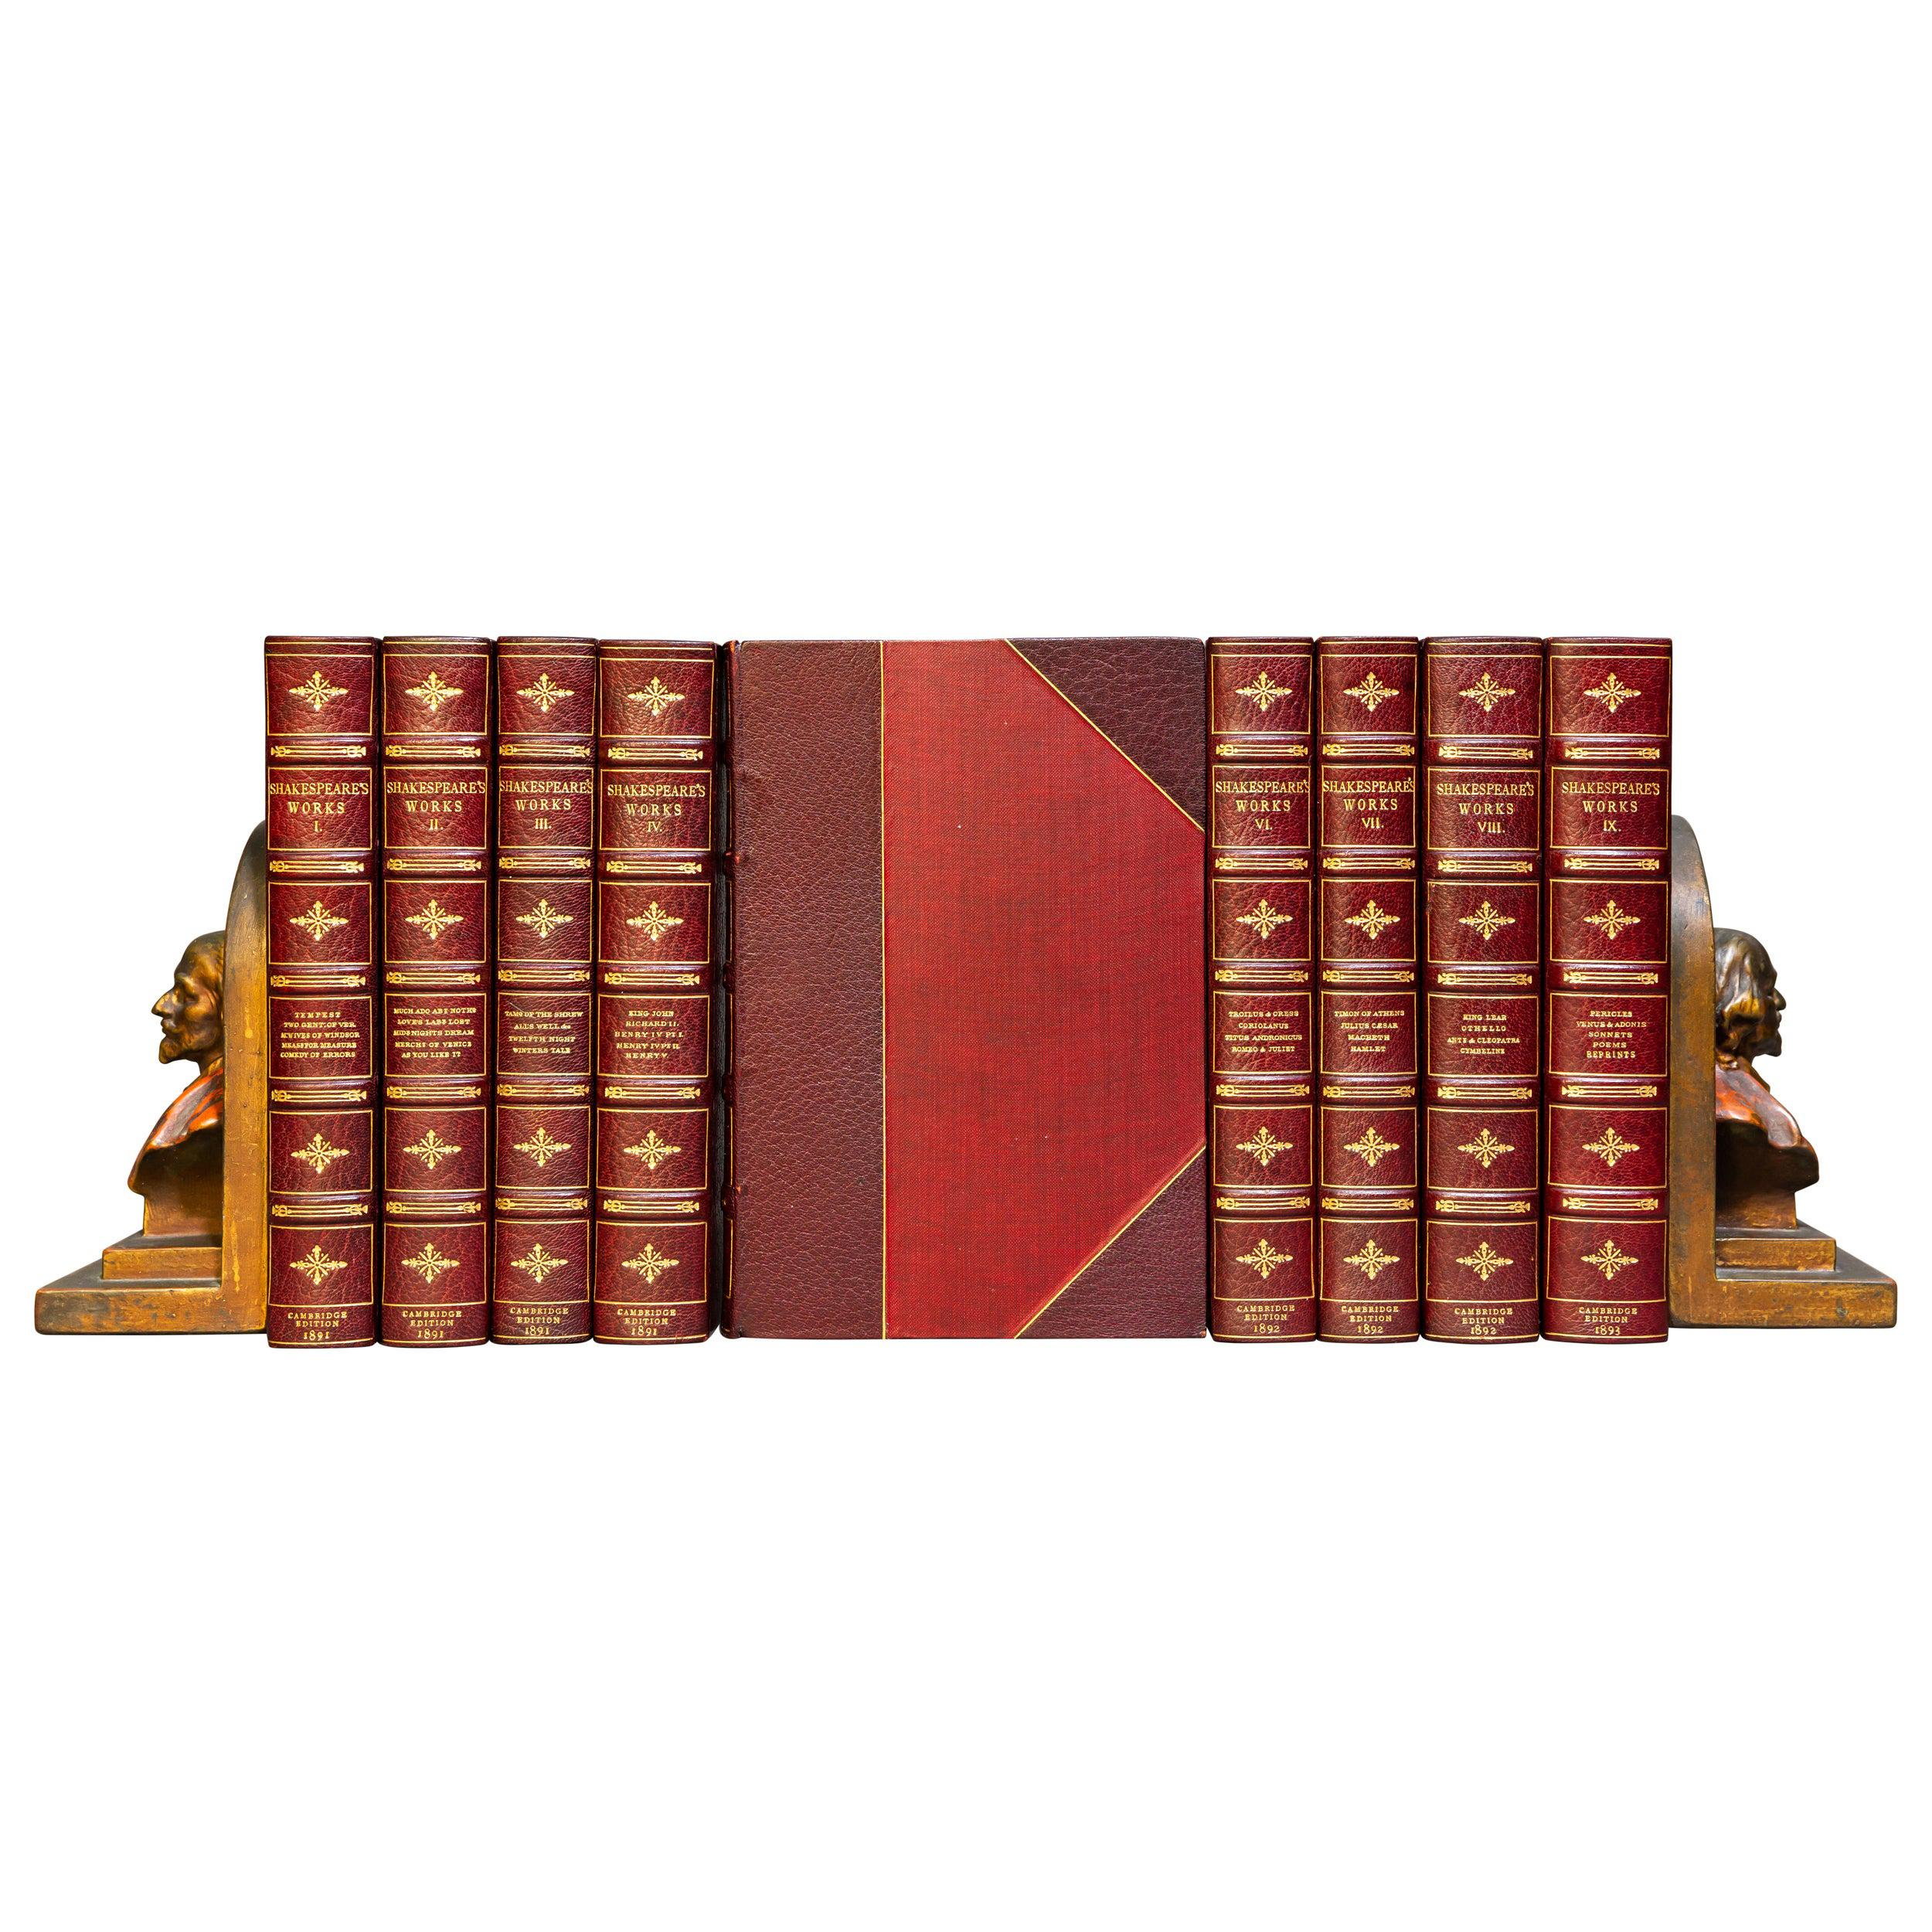 'Book Sets' 9 Volumes, William Shakespeare, The Complete Works